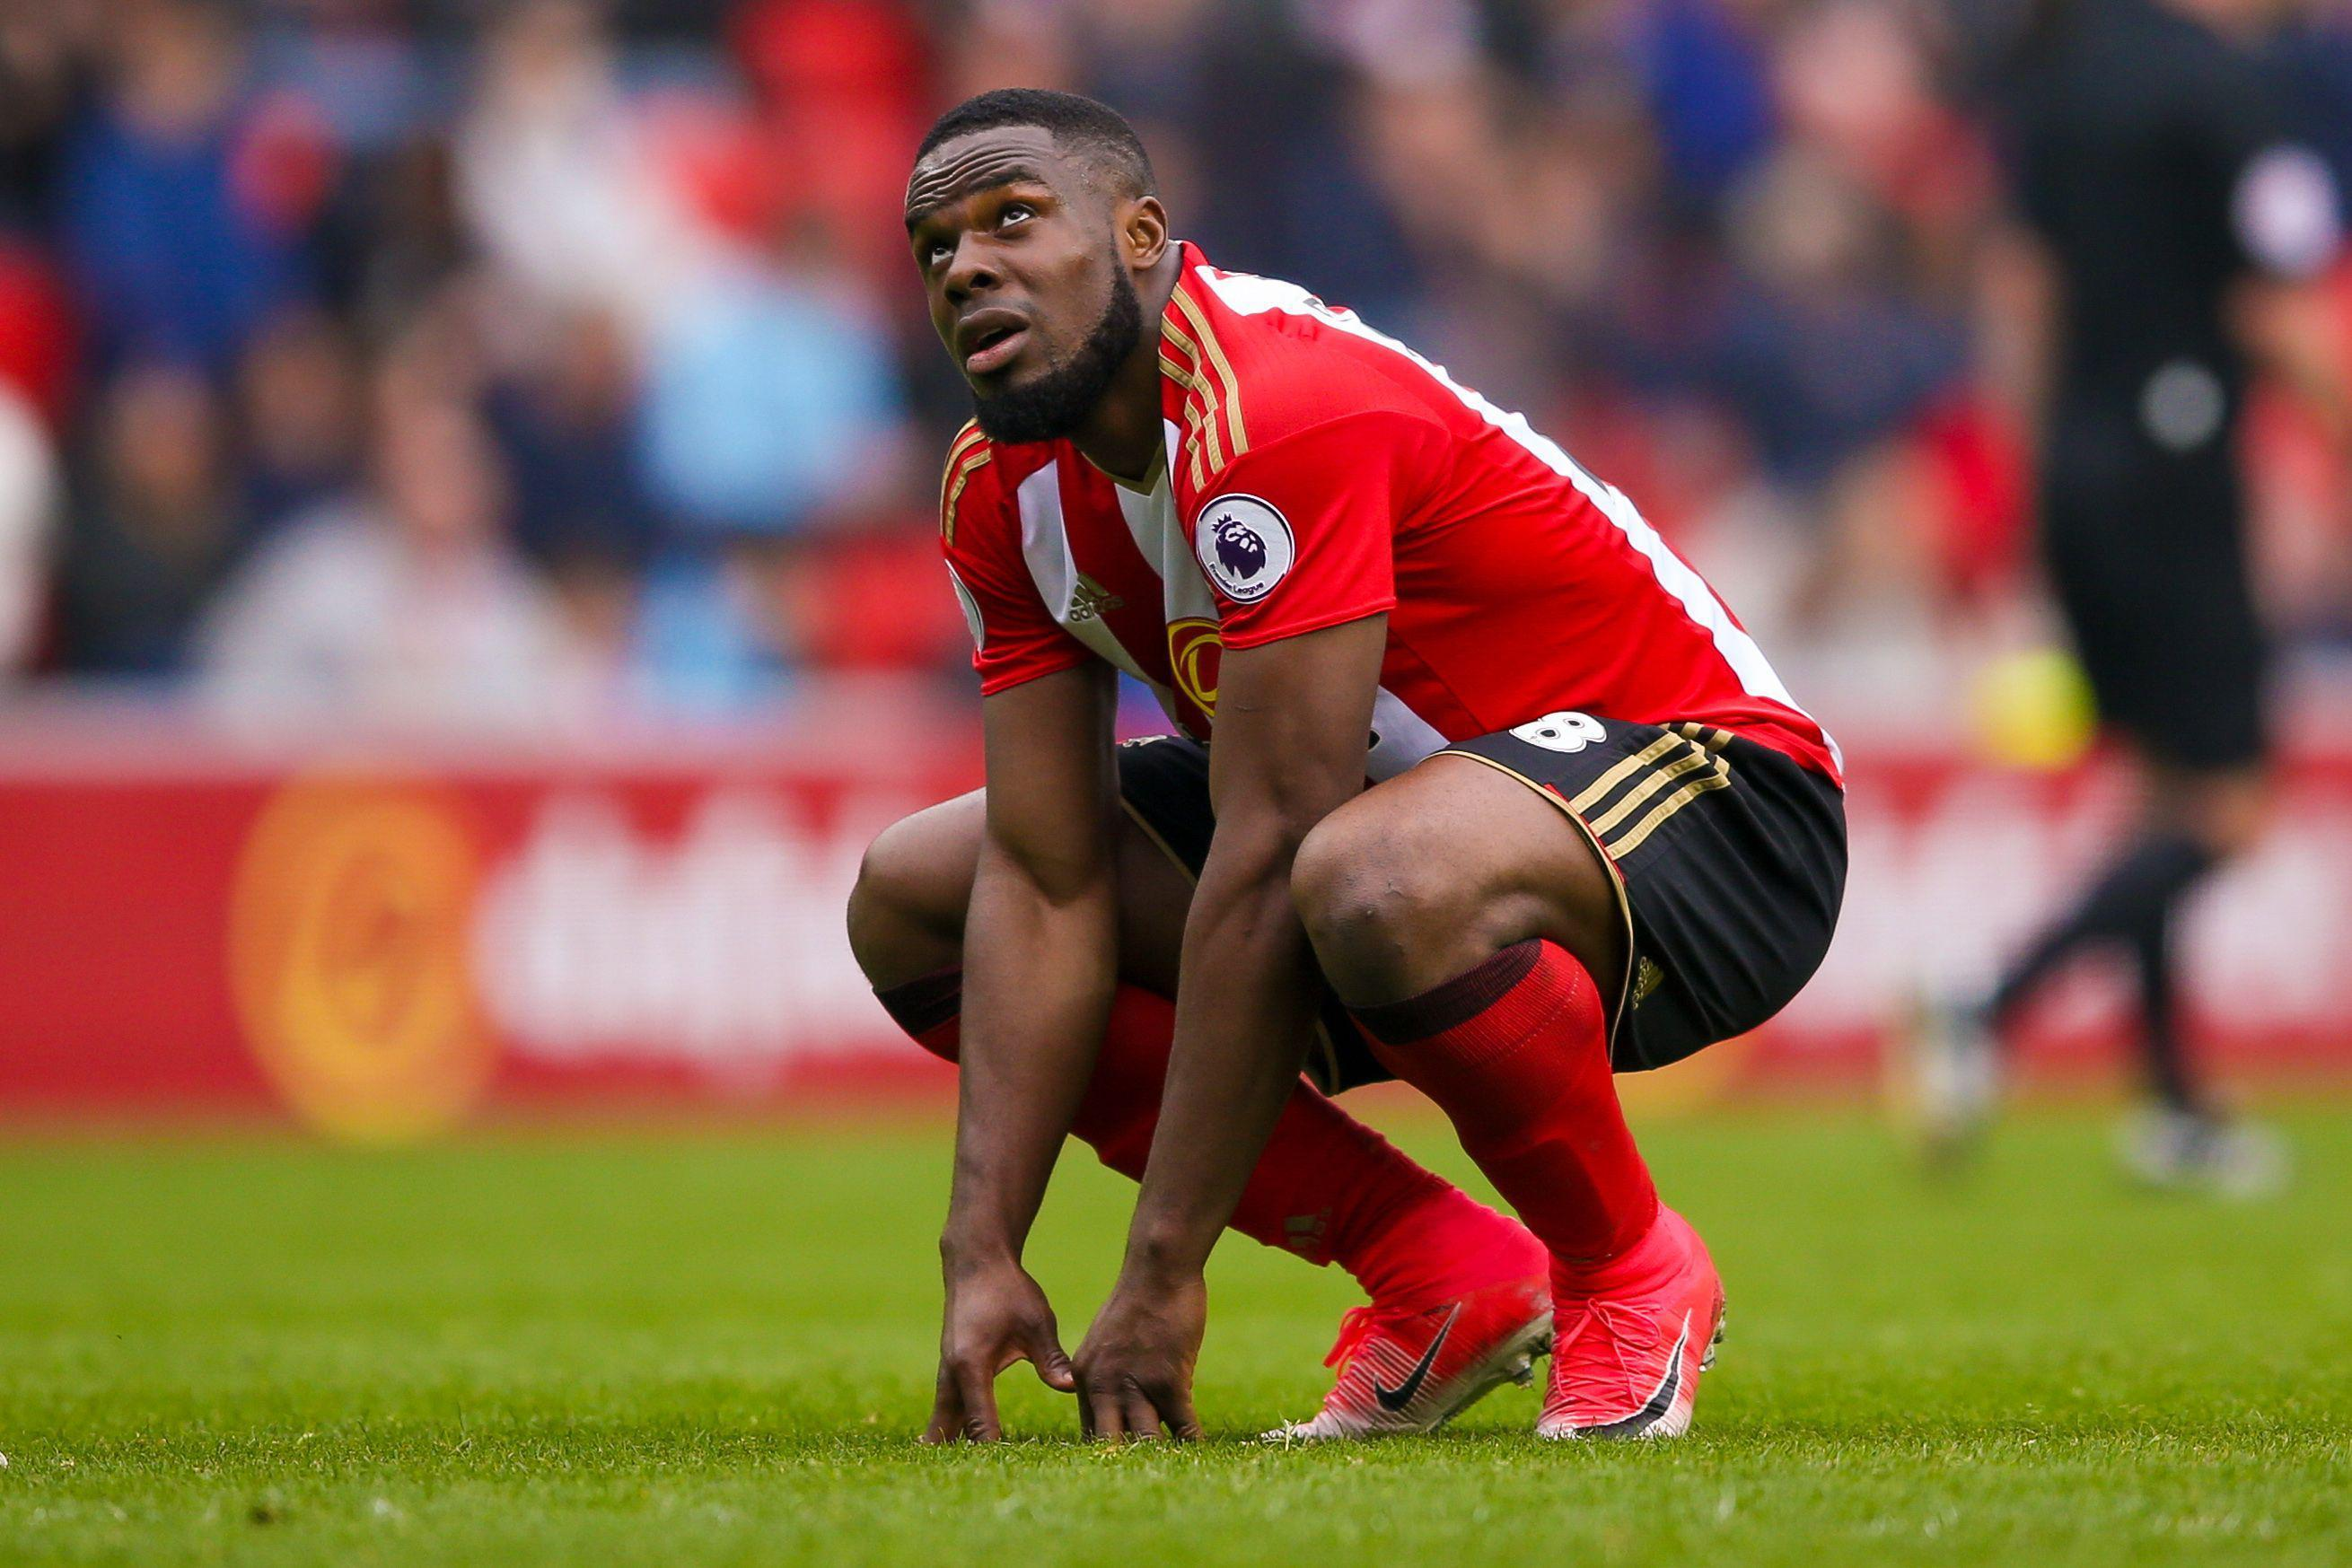 Victor Anichebe is also set to leave Sunderland when his contract expires